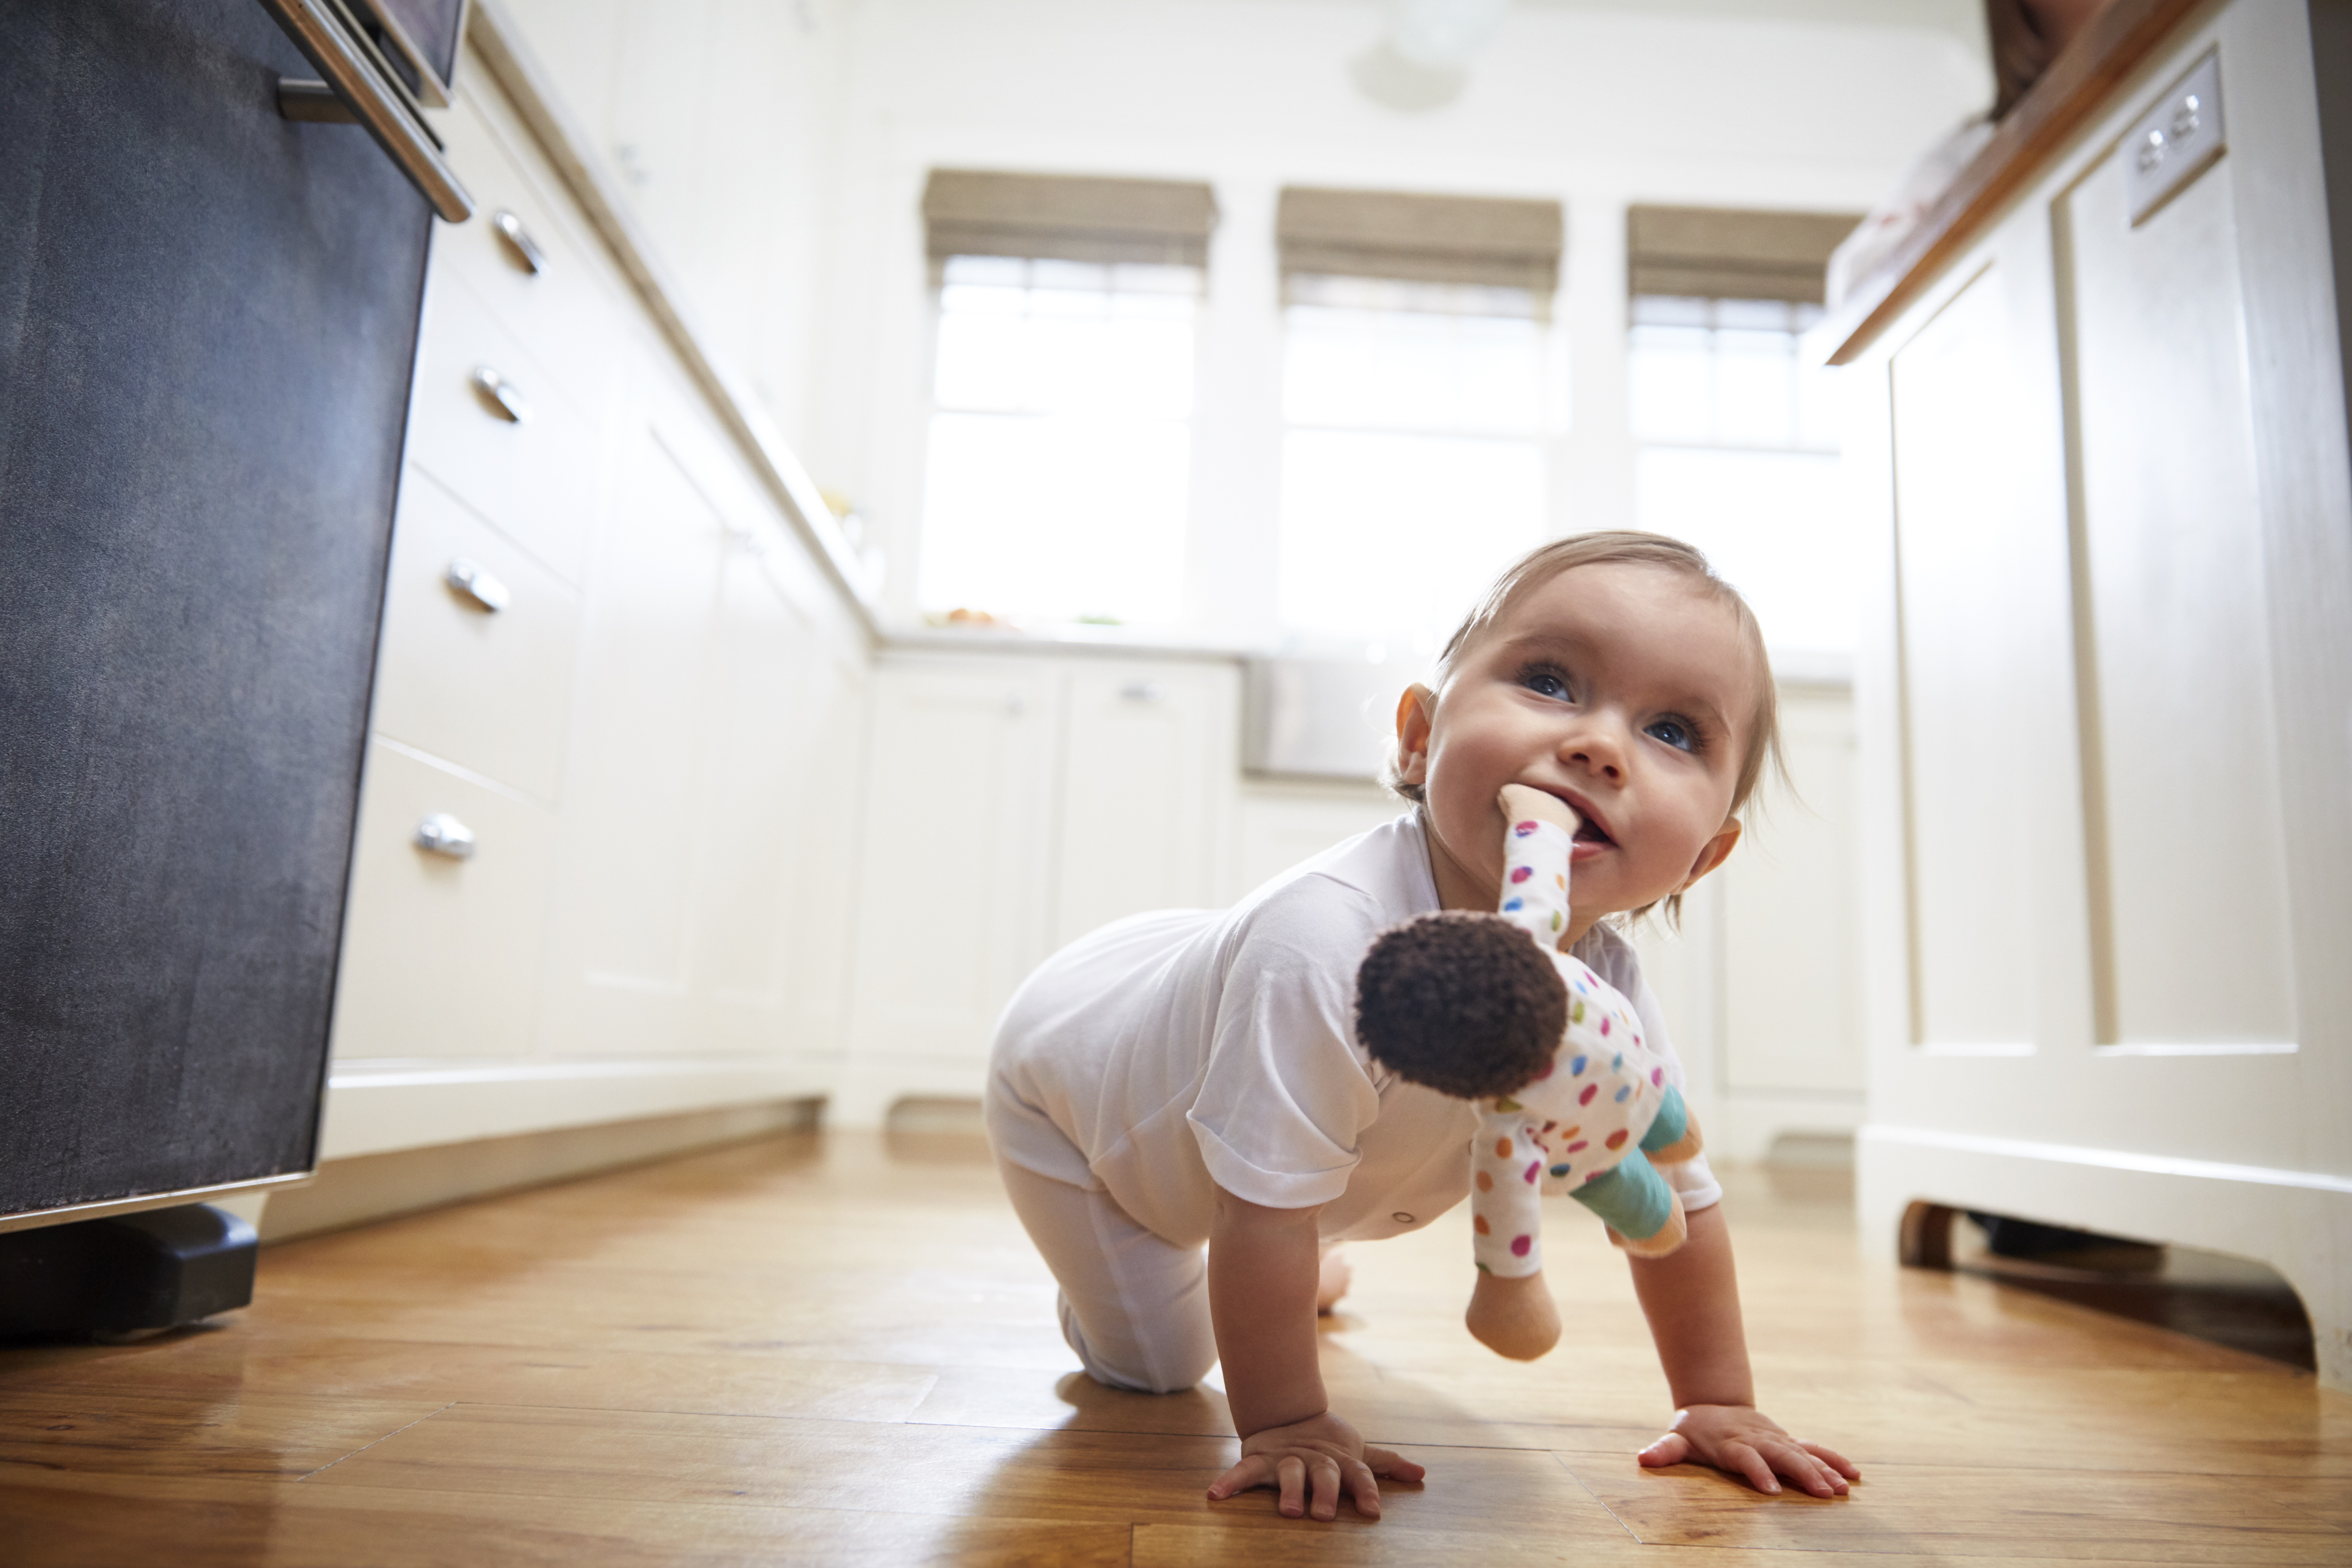 Toddler crawling with the Cotton Doll in their mouth